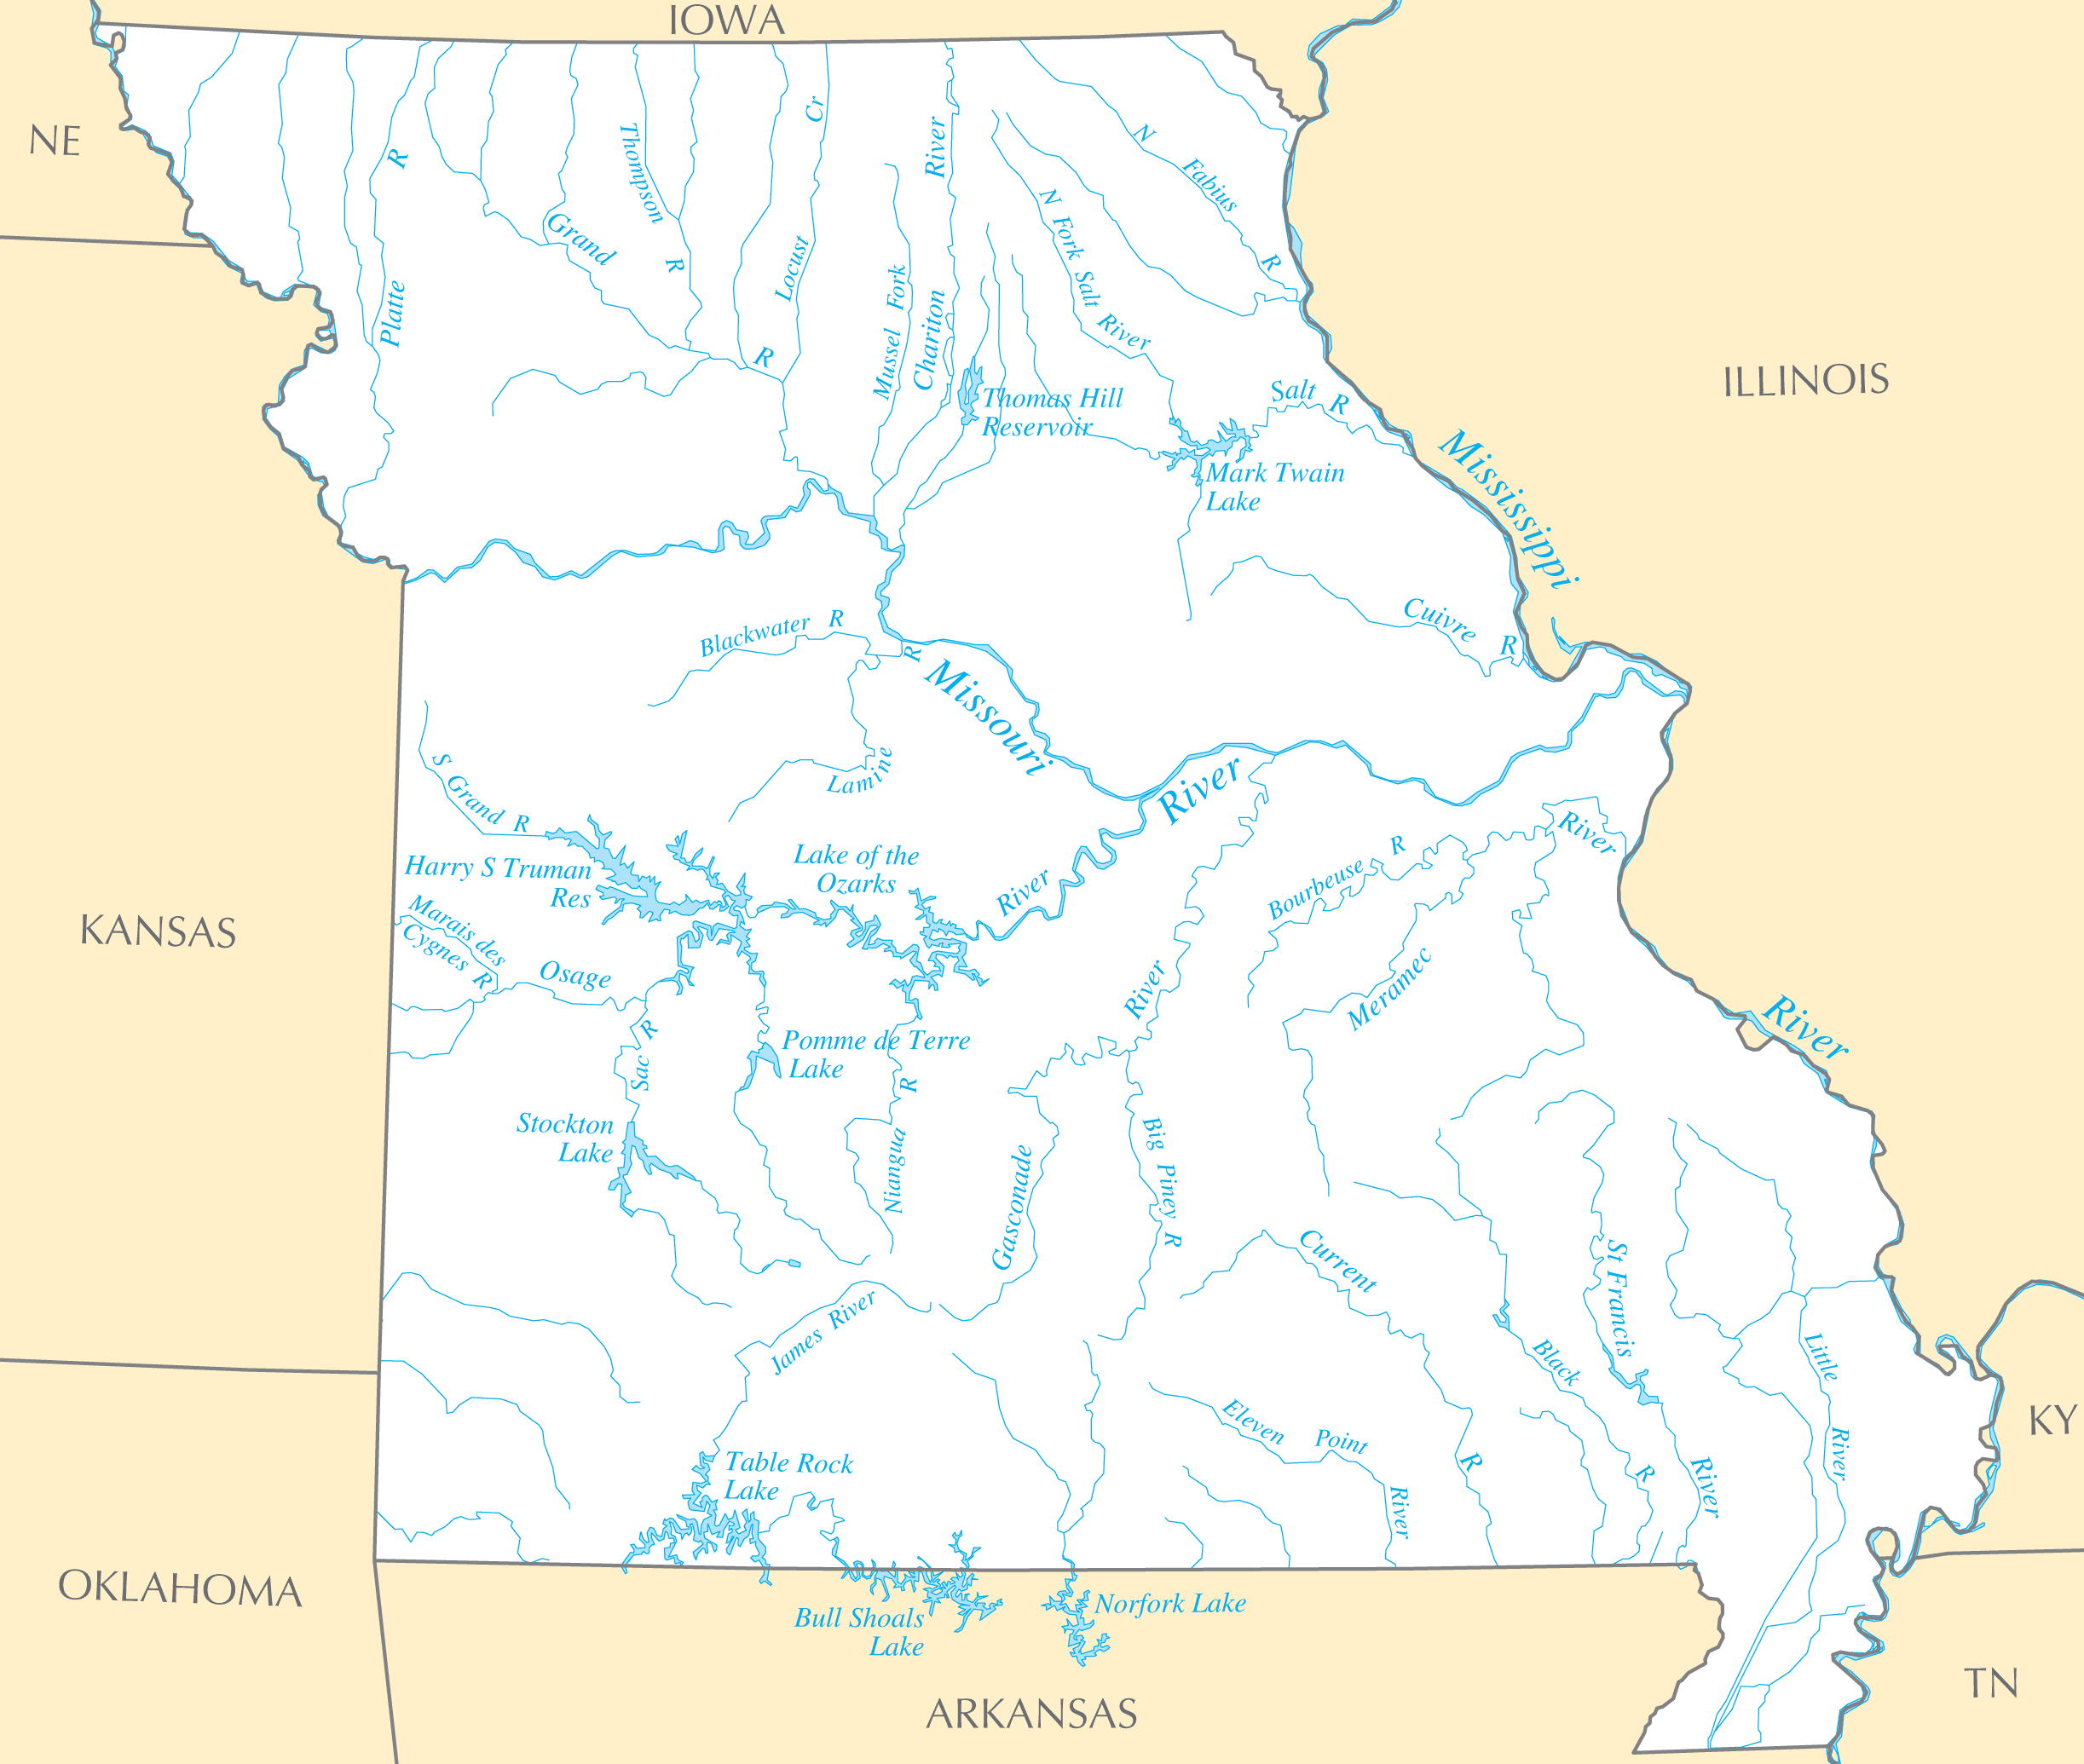 Missouri Rivers And Lakes large map